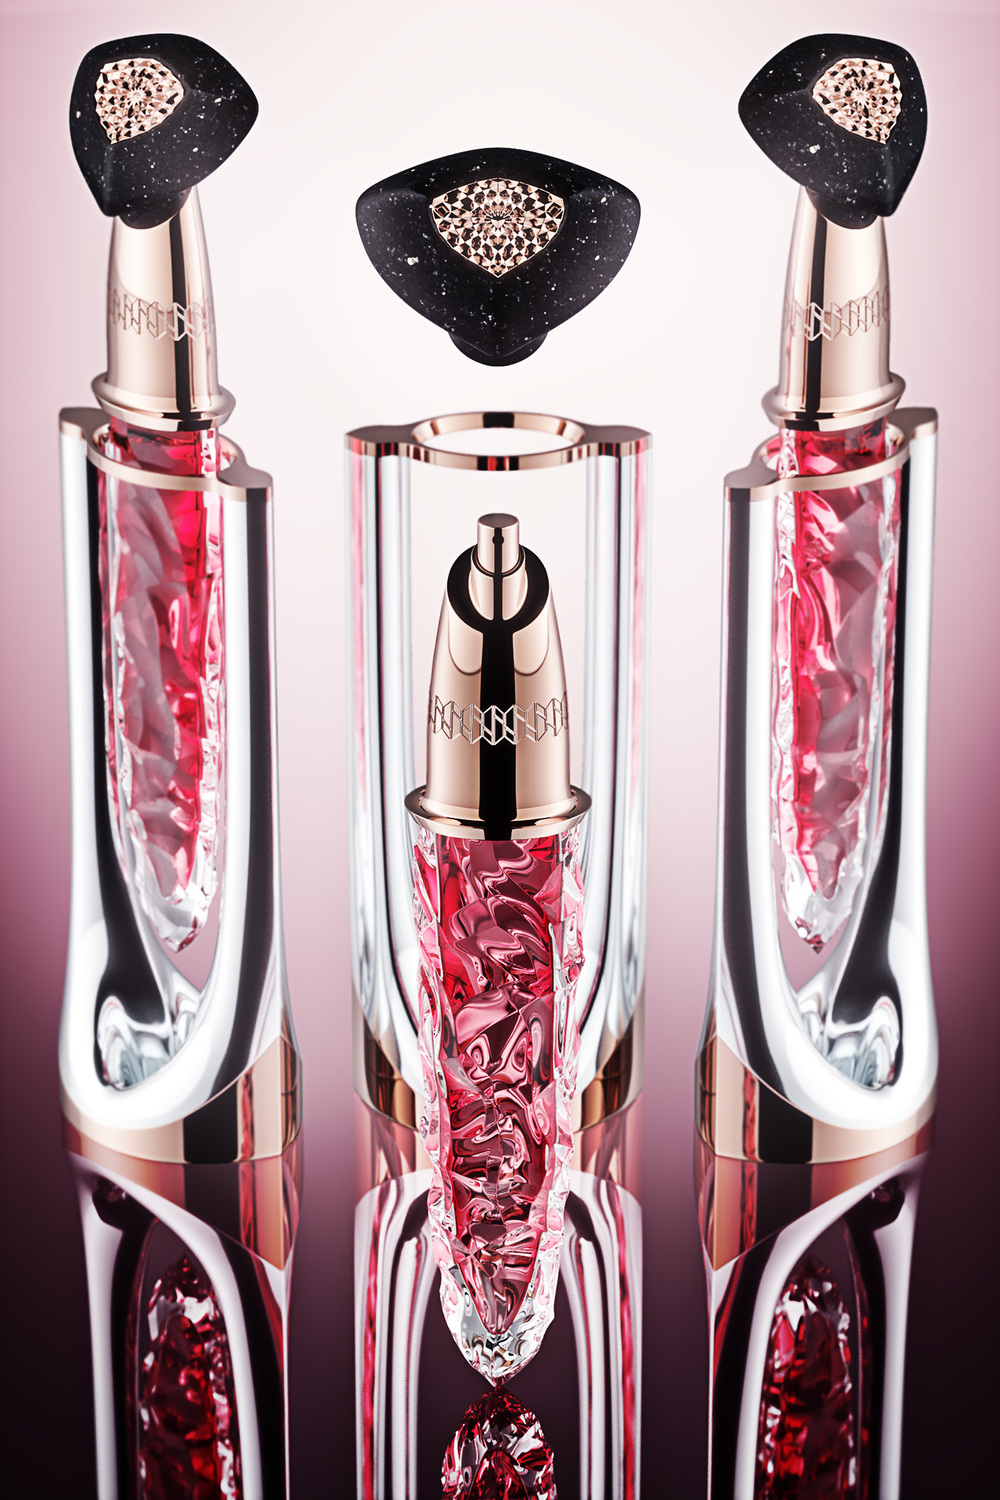 Luxury perfume vial concept Shard 4